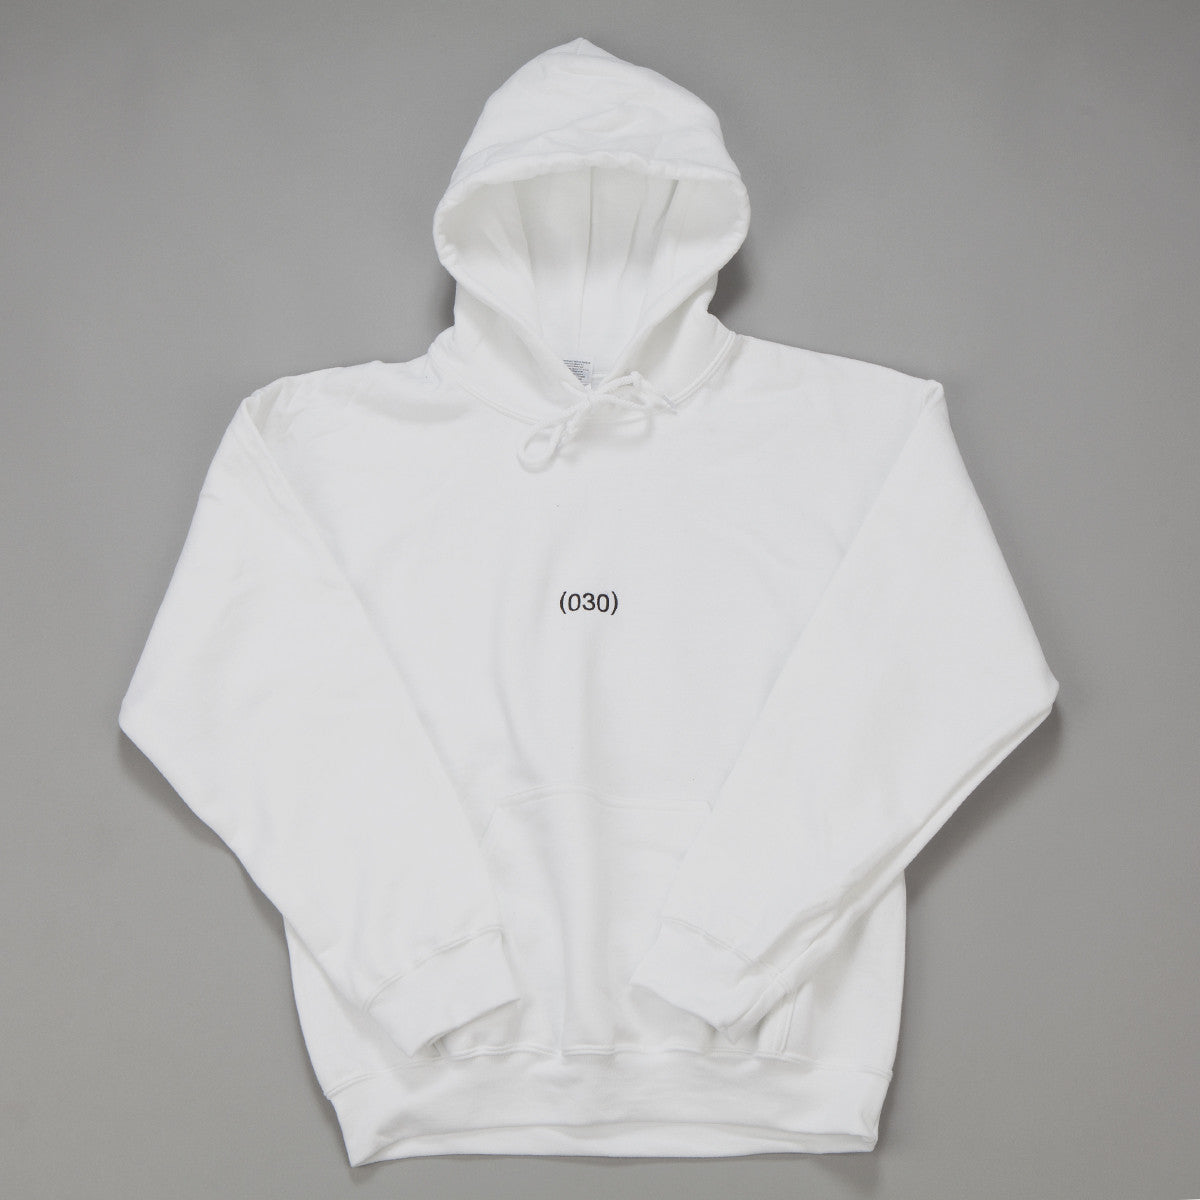 (030) Hooded Sweatshirt - White